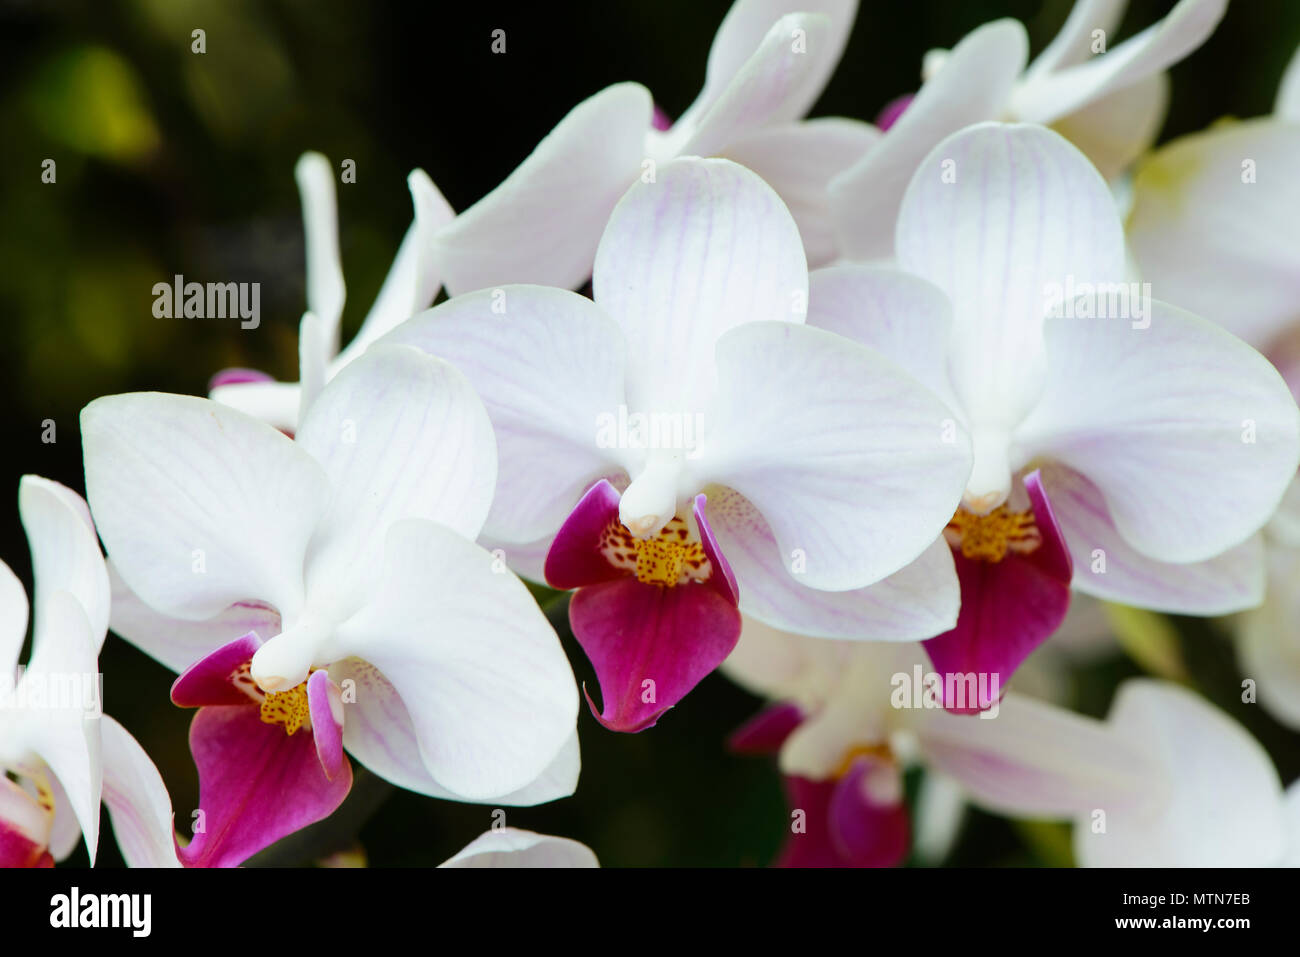 White Orchids Flowers In Bloom Stock Photo 187322307 Alamy